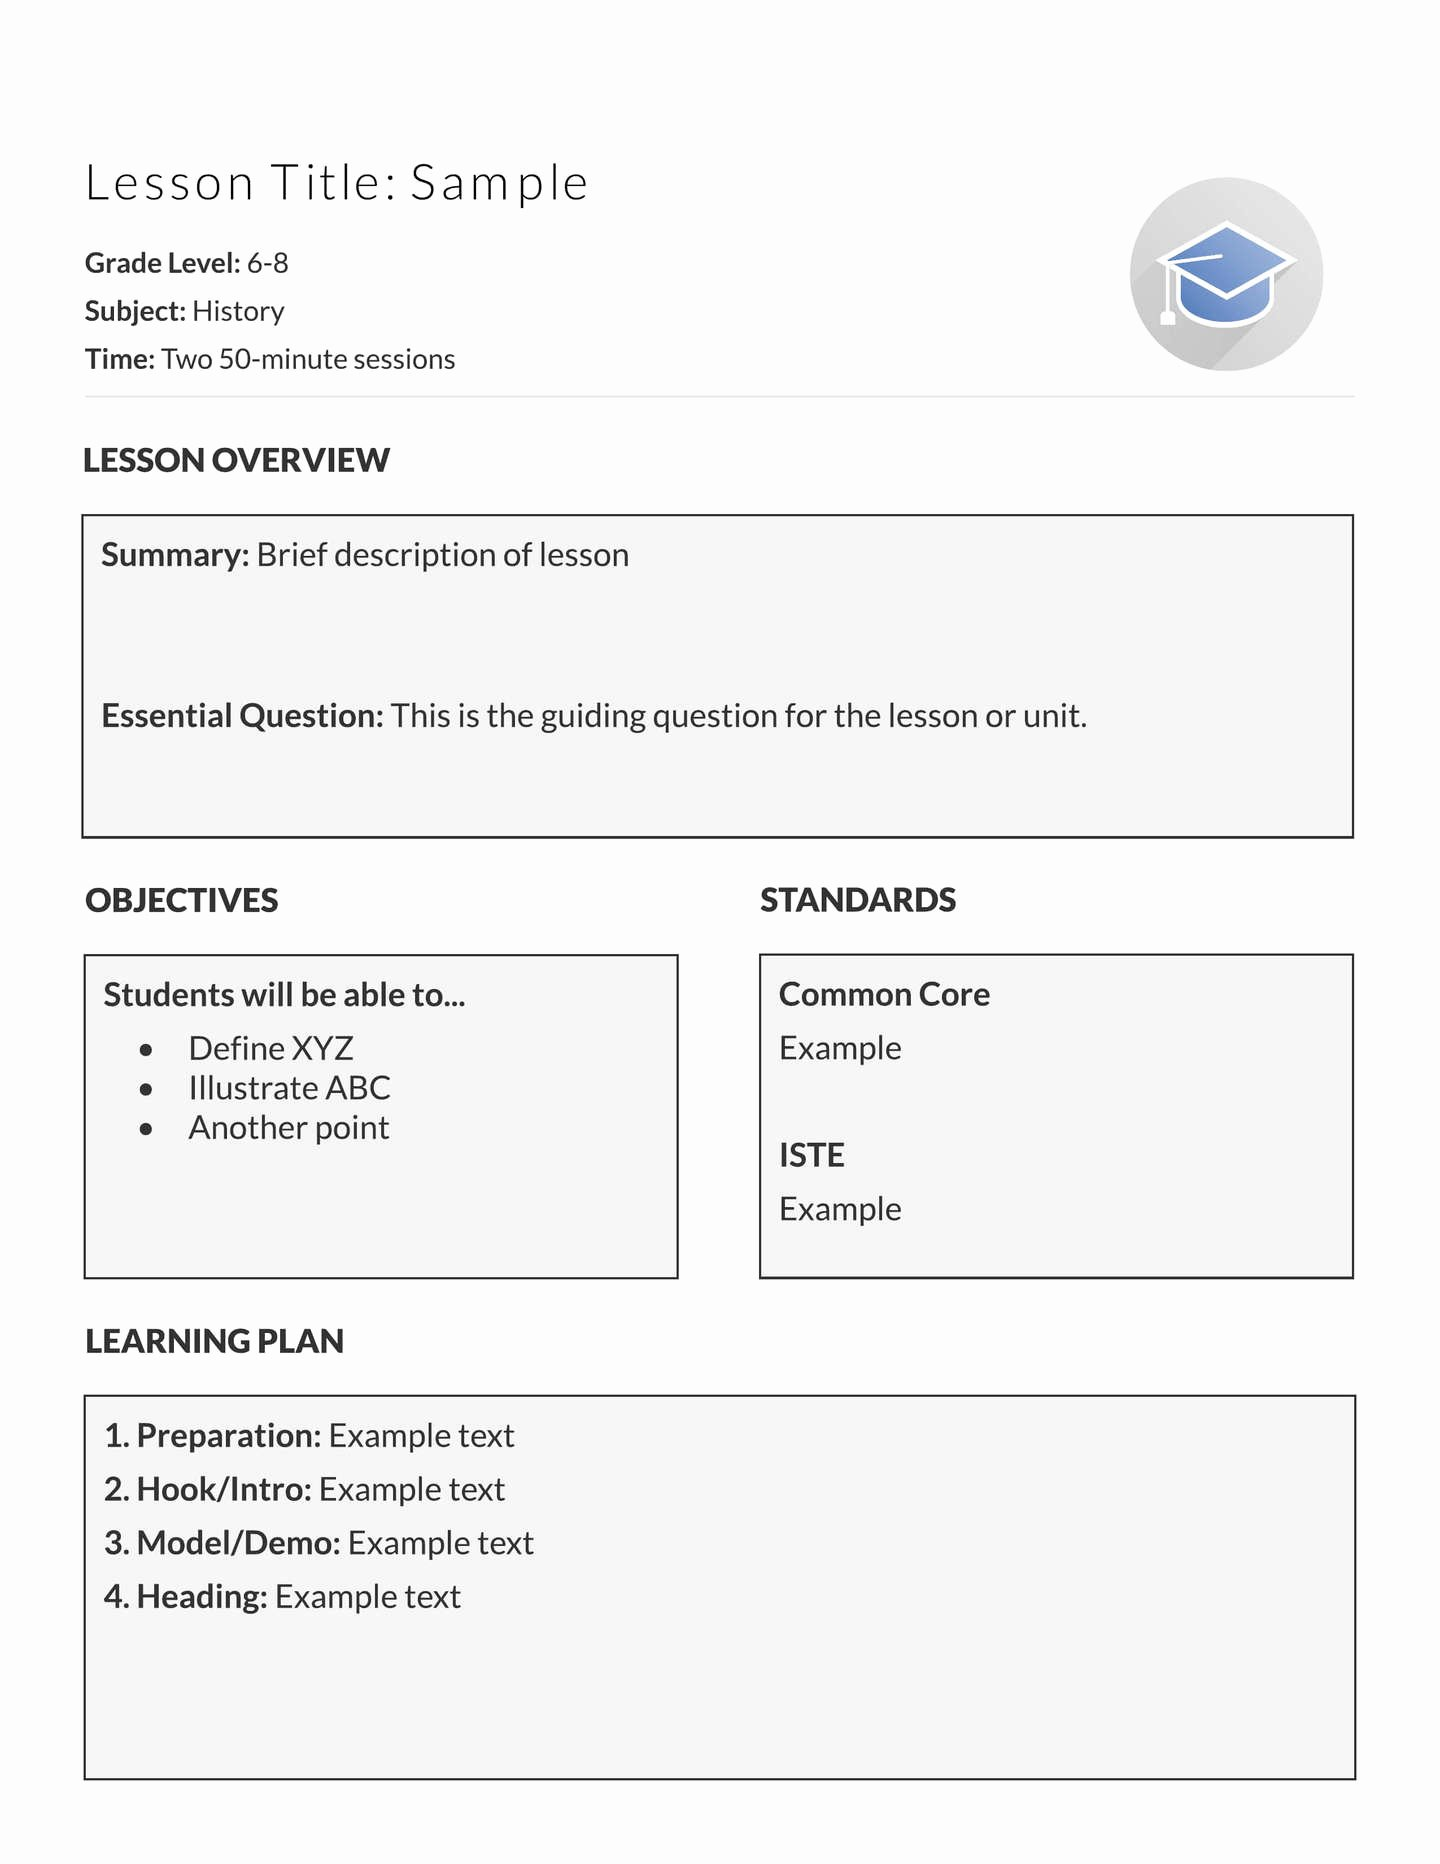 Basic Lesson Plan Template Awesome 5 Free Lesson Plan Templates & Examples Lucidpress